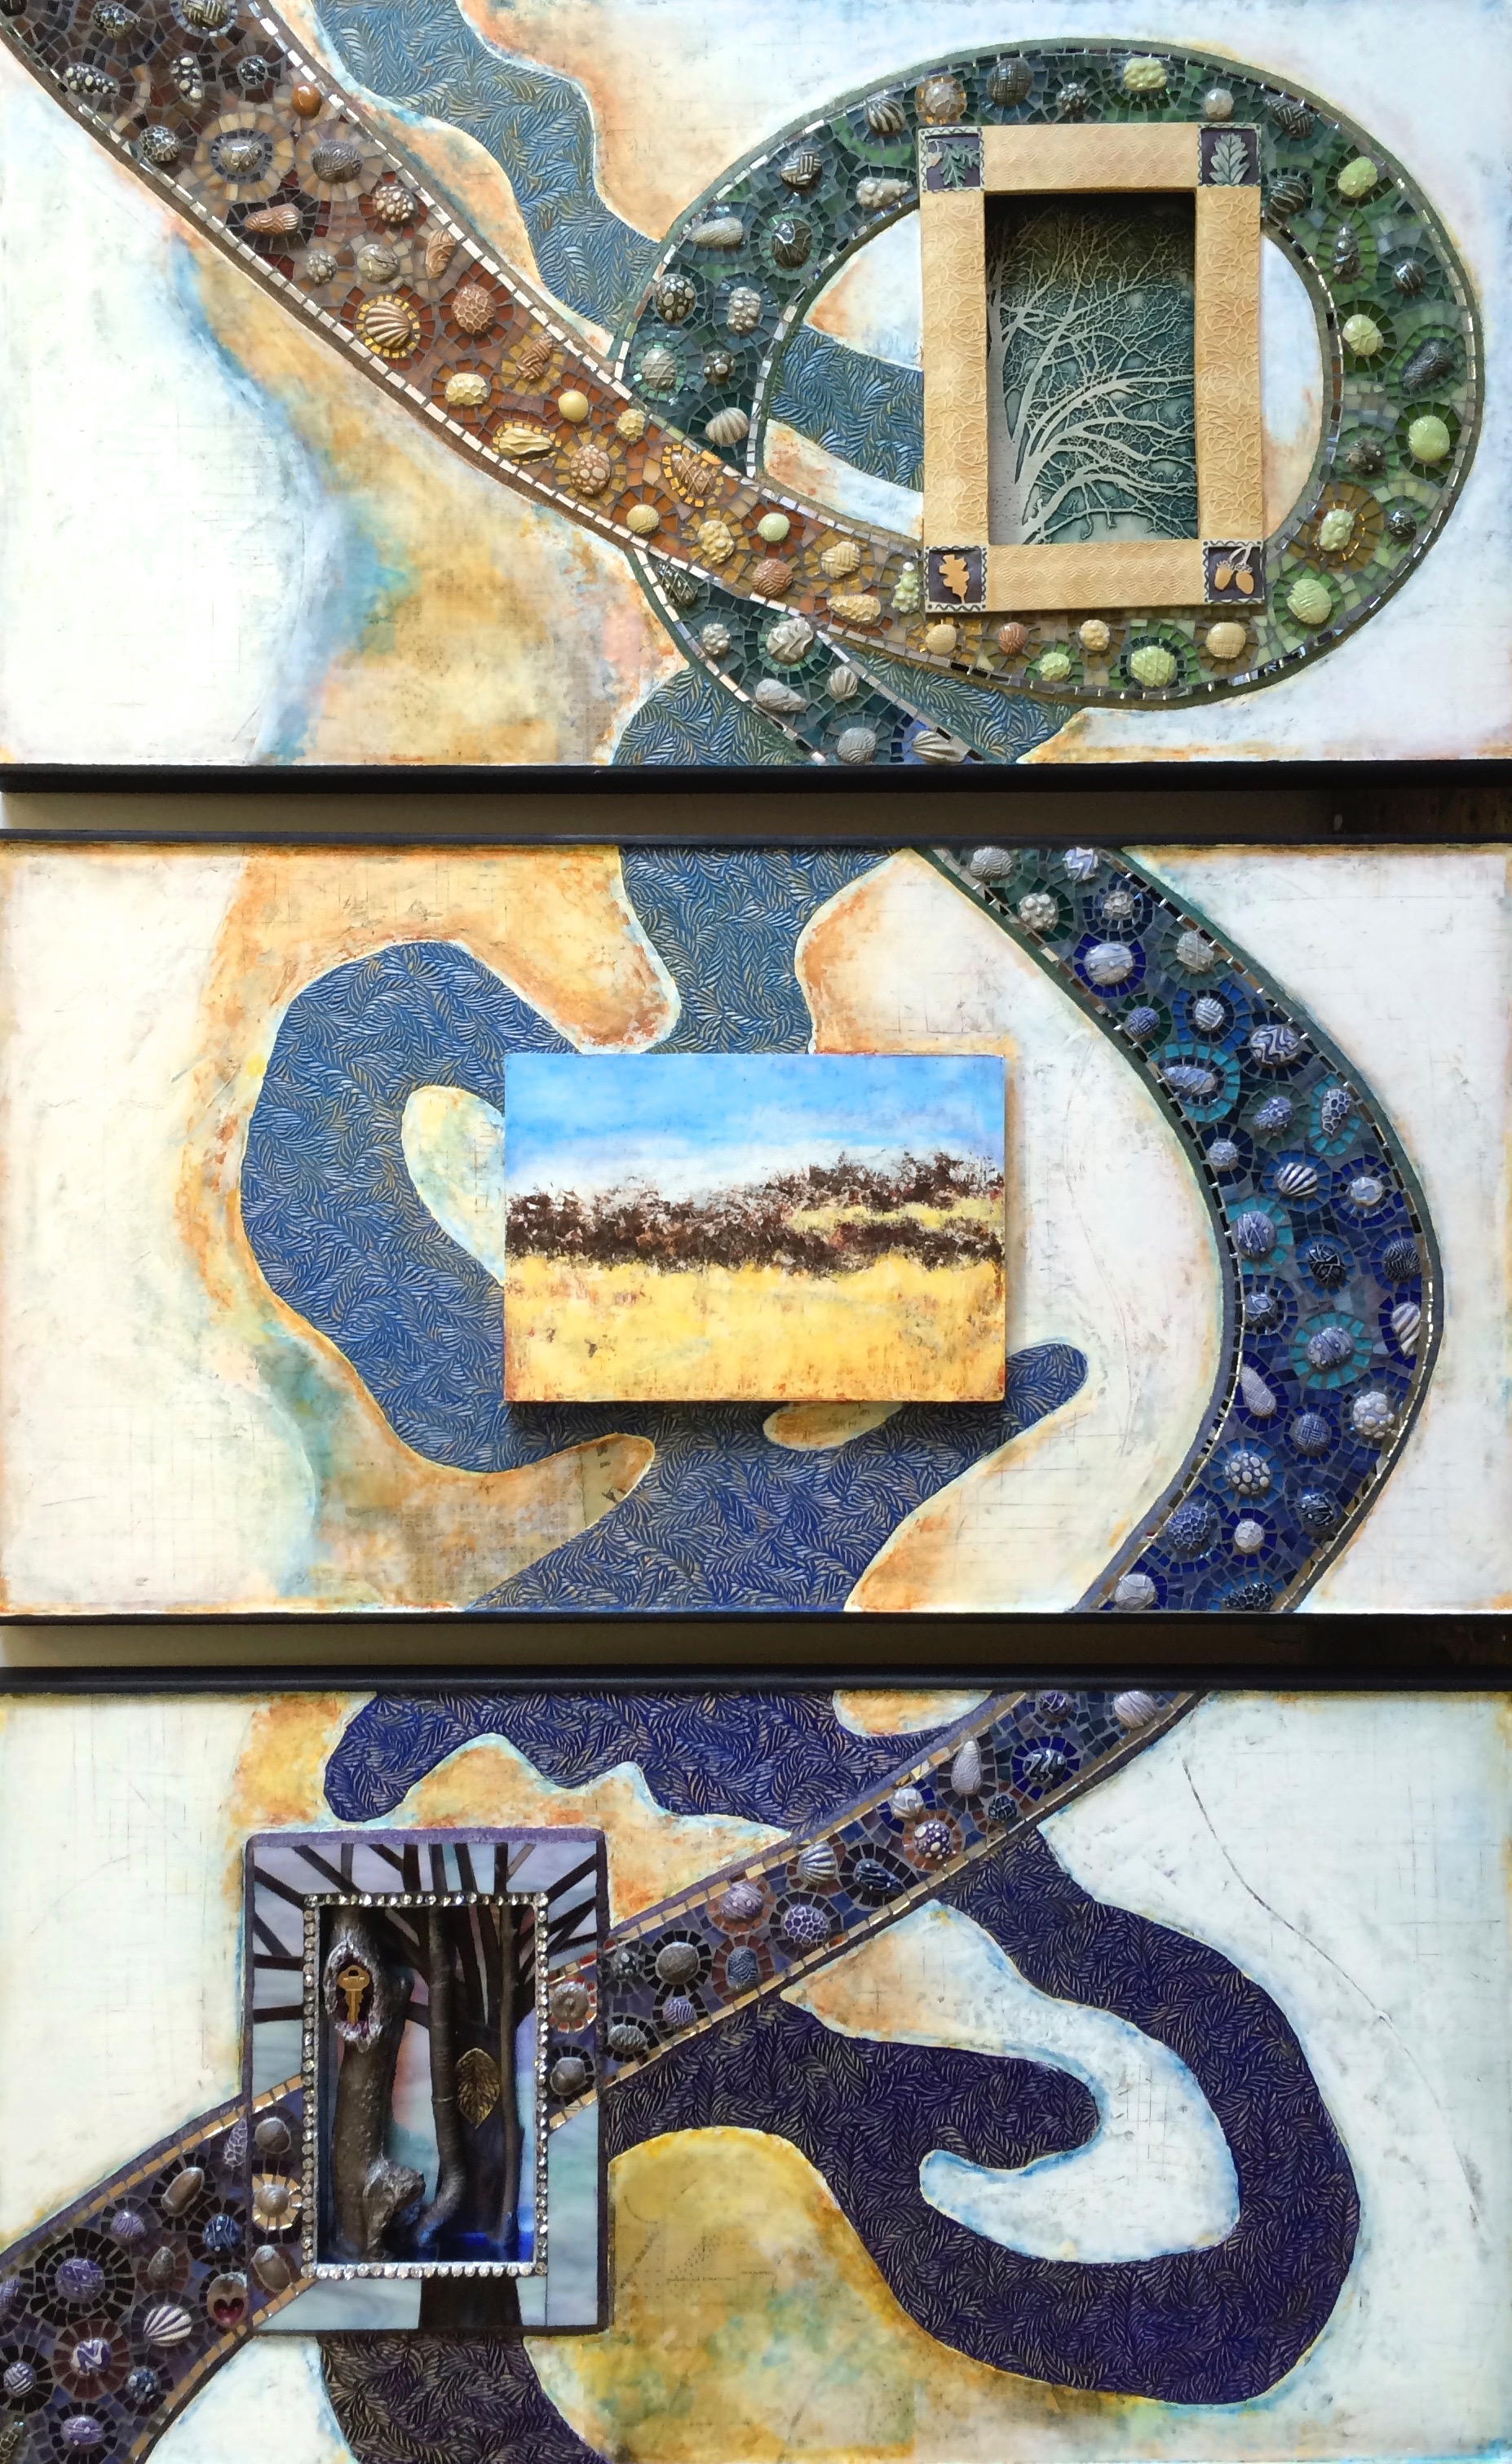 """Rivers, Roads, Remains"" is a 3-panel (each 20"" x 40"")  mixed-media artwork, portraying ideas connected to the Missouri River. It includes old maps, found objects and the mosaic path echoes the line of the Bob Kerrey bridge that links Omaha and Council Bluffs."